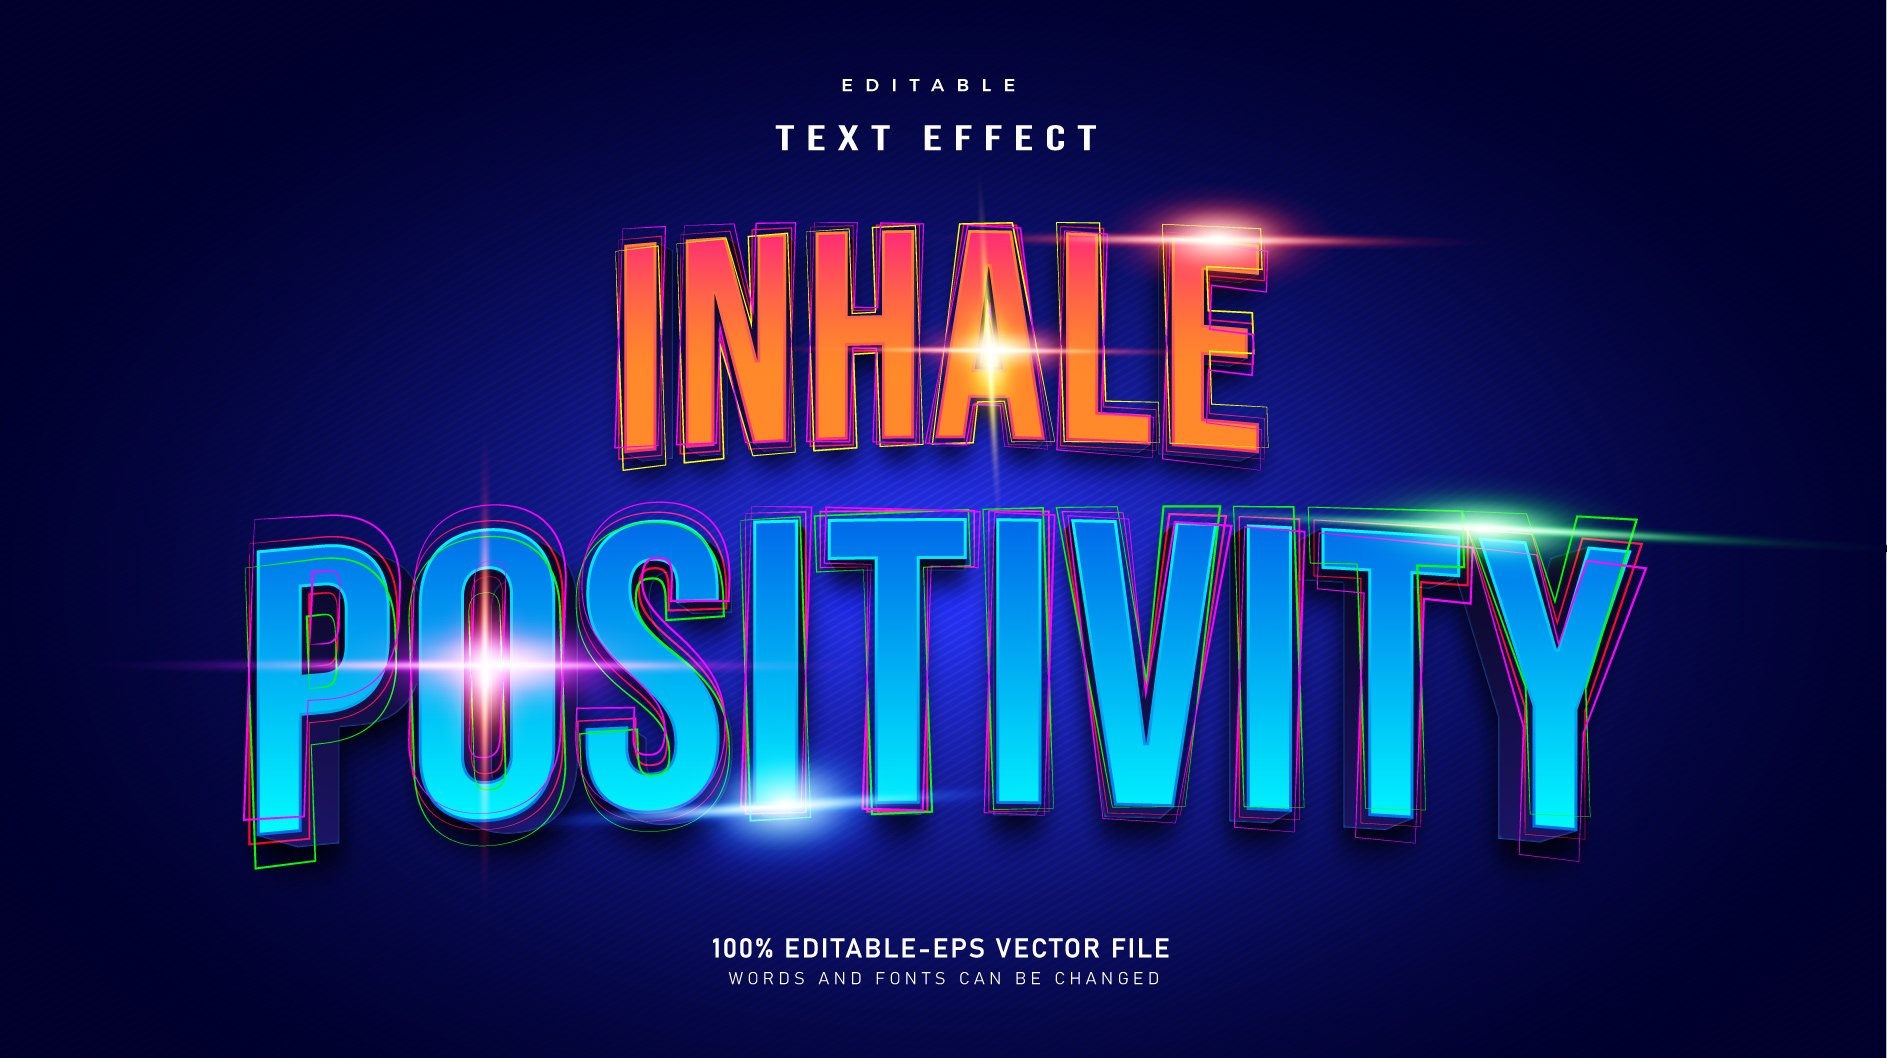 Inhale-Positivity-Neon-Editable-Text-Effect